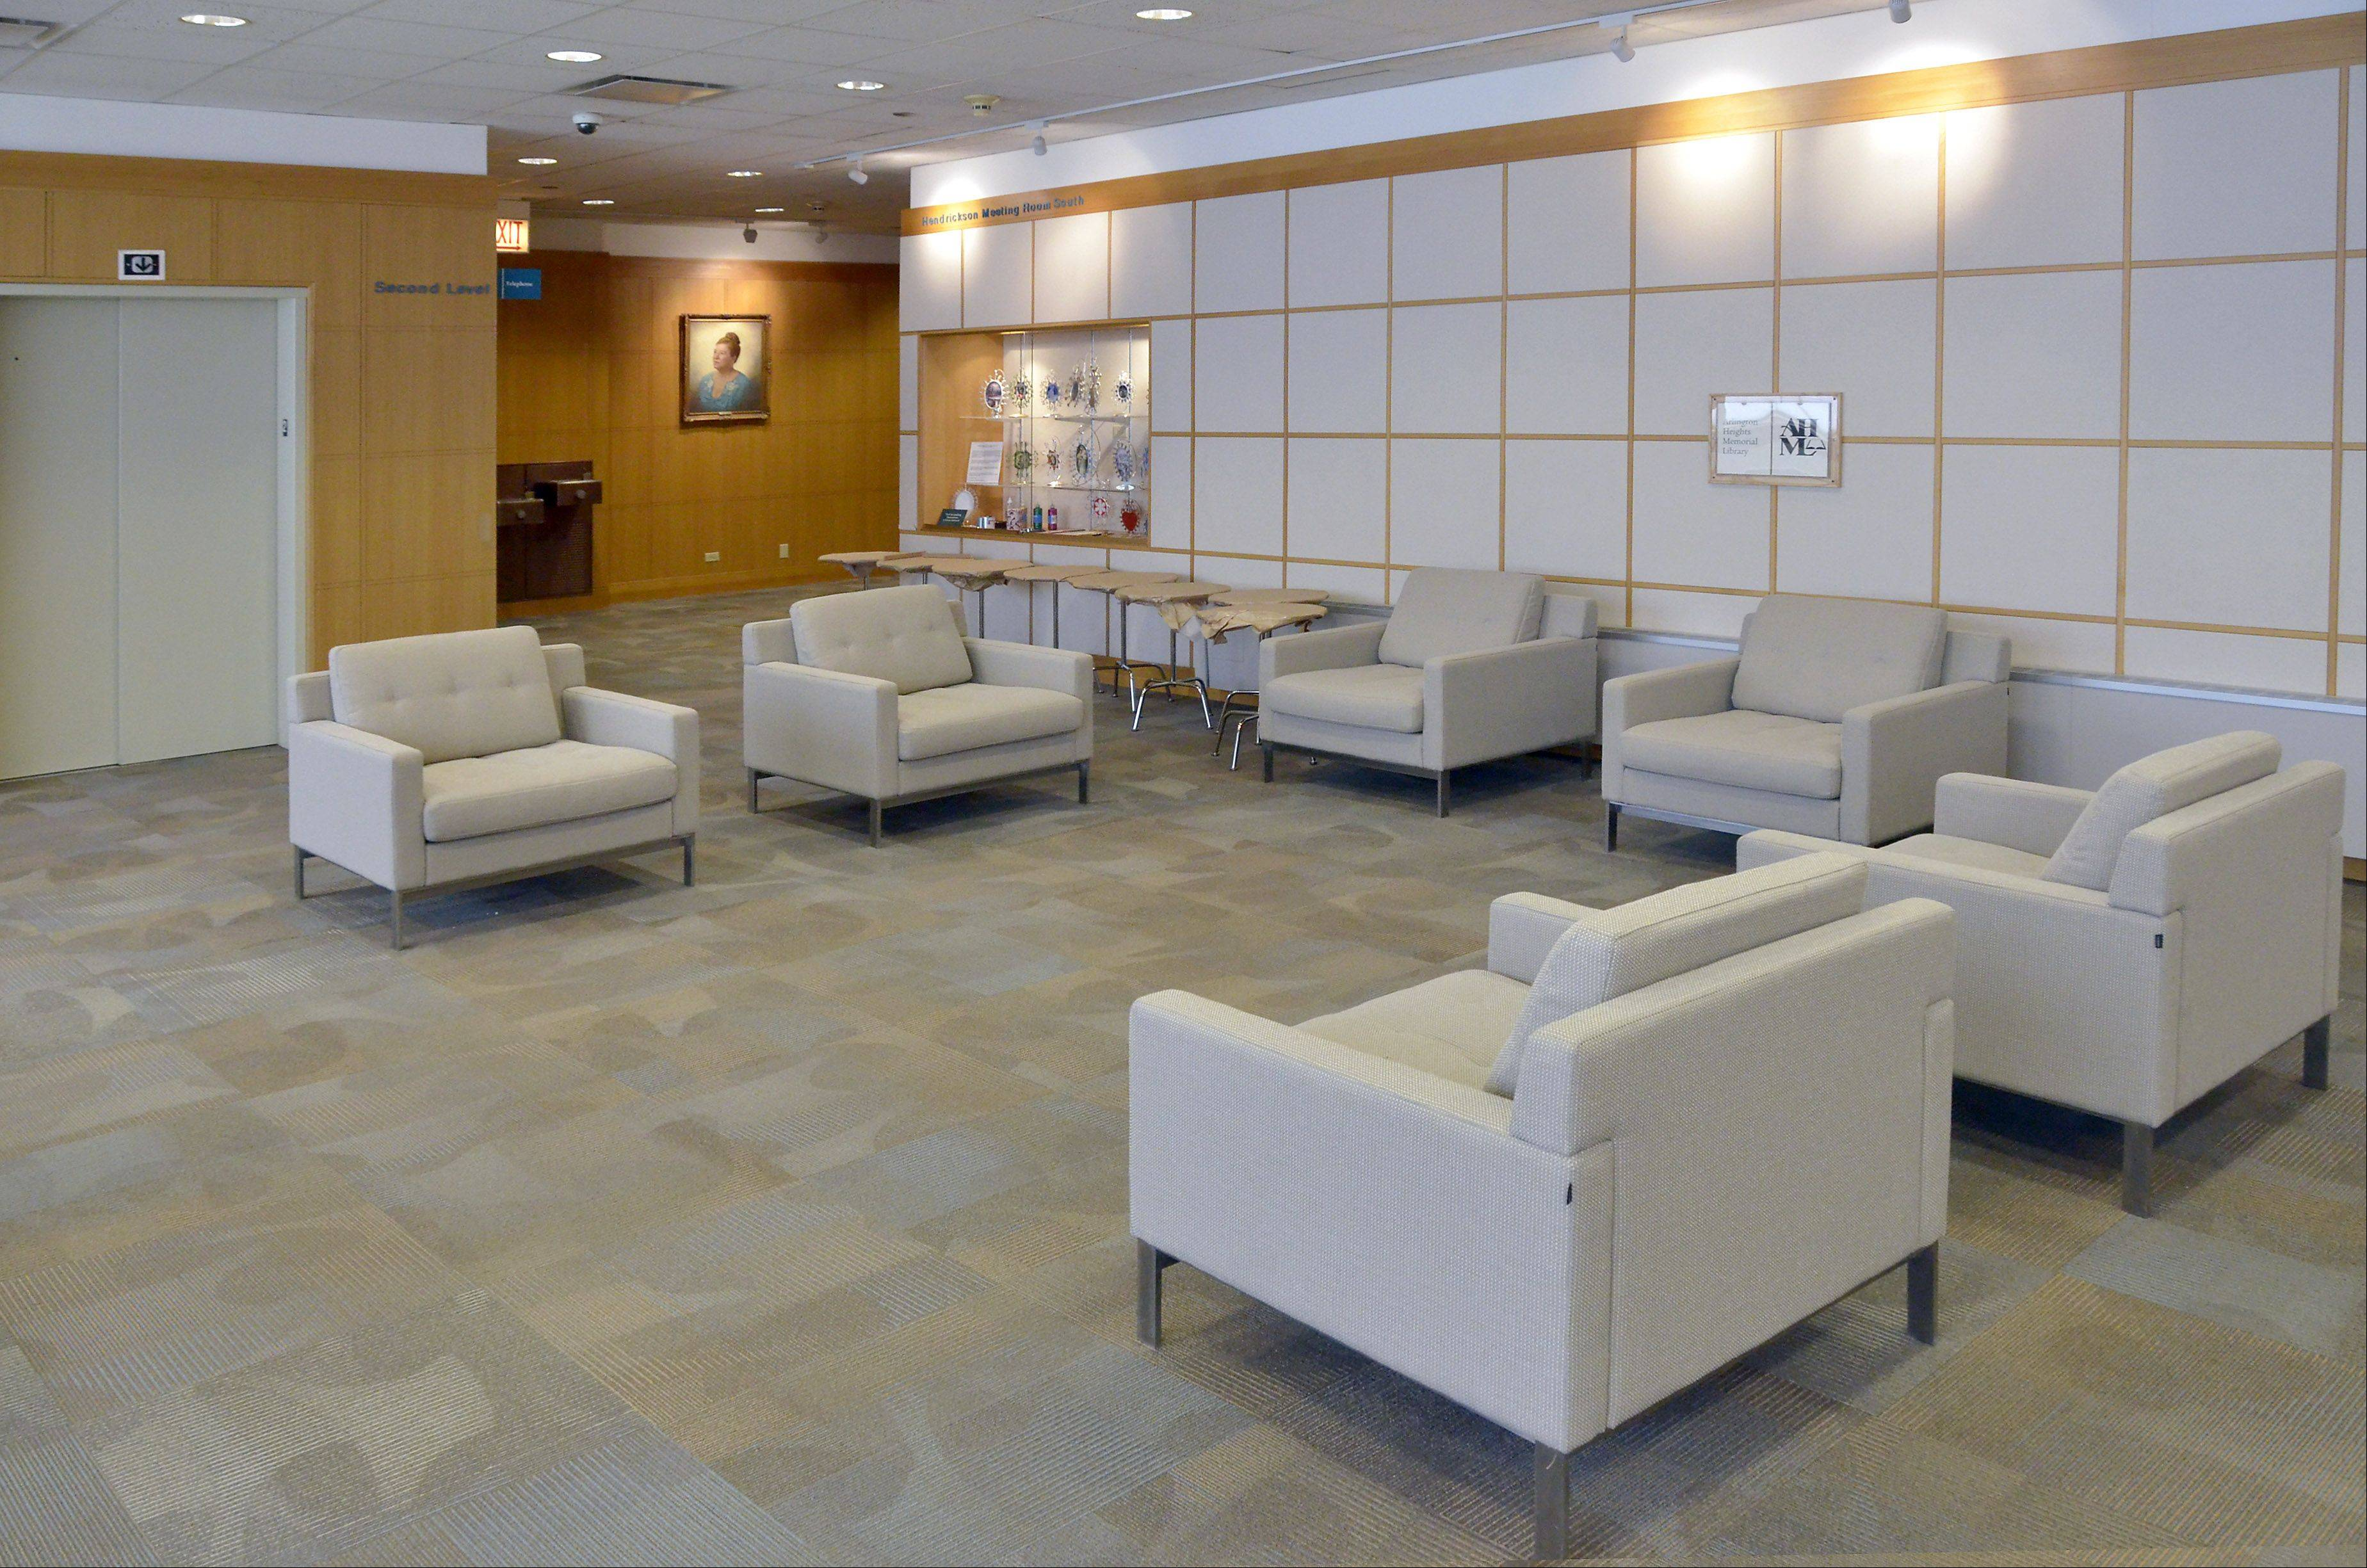 A reception area lounge outside the Hendrickson Room is part of renovations at the Arlington Heights Memorial Library.